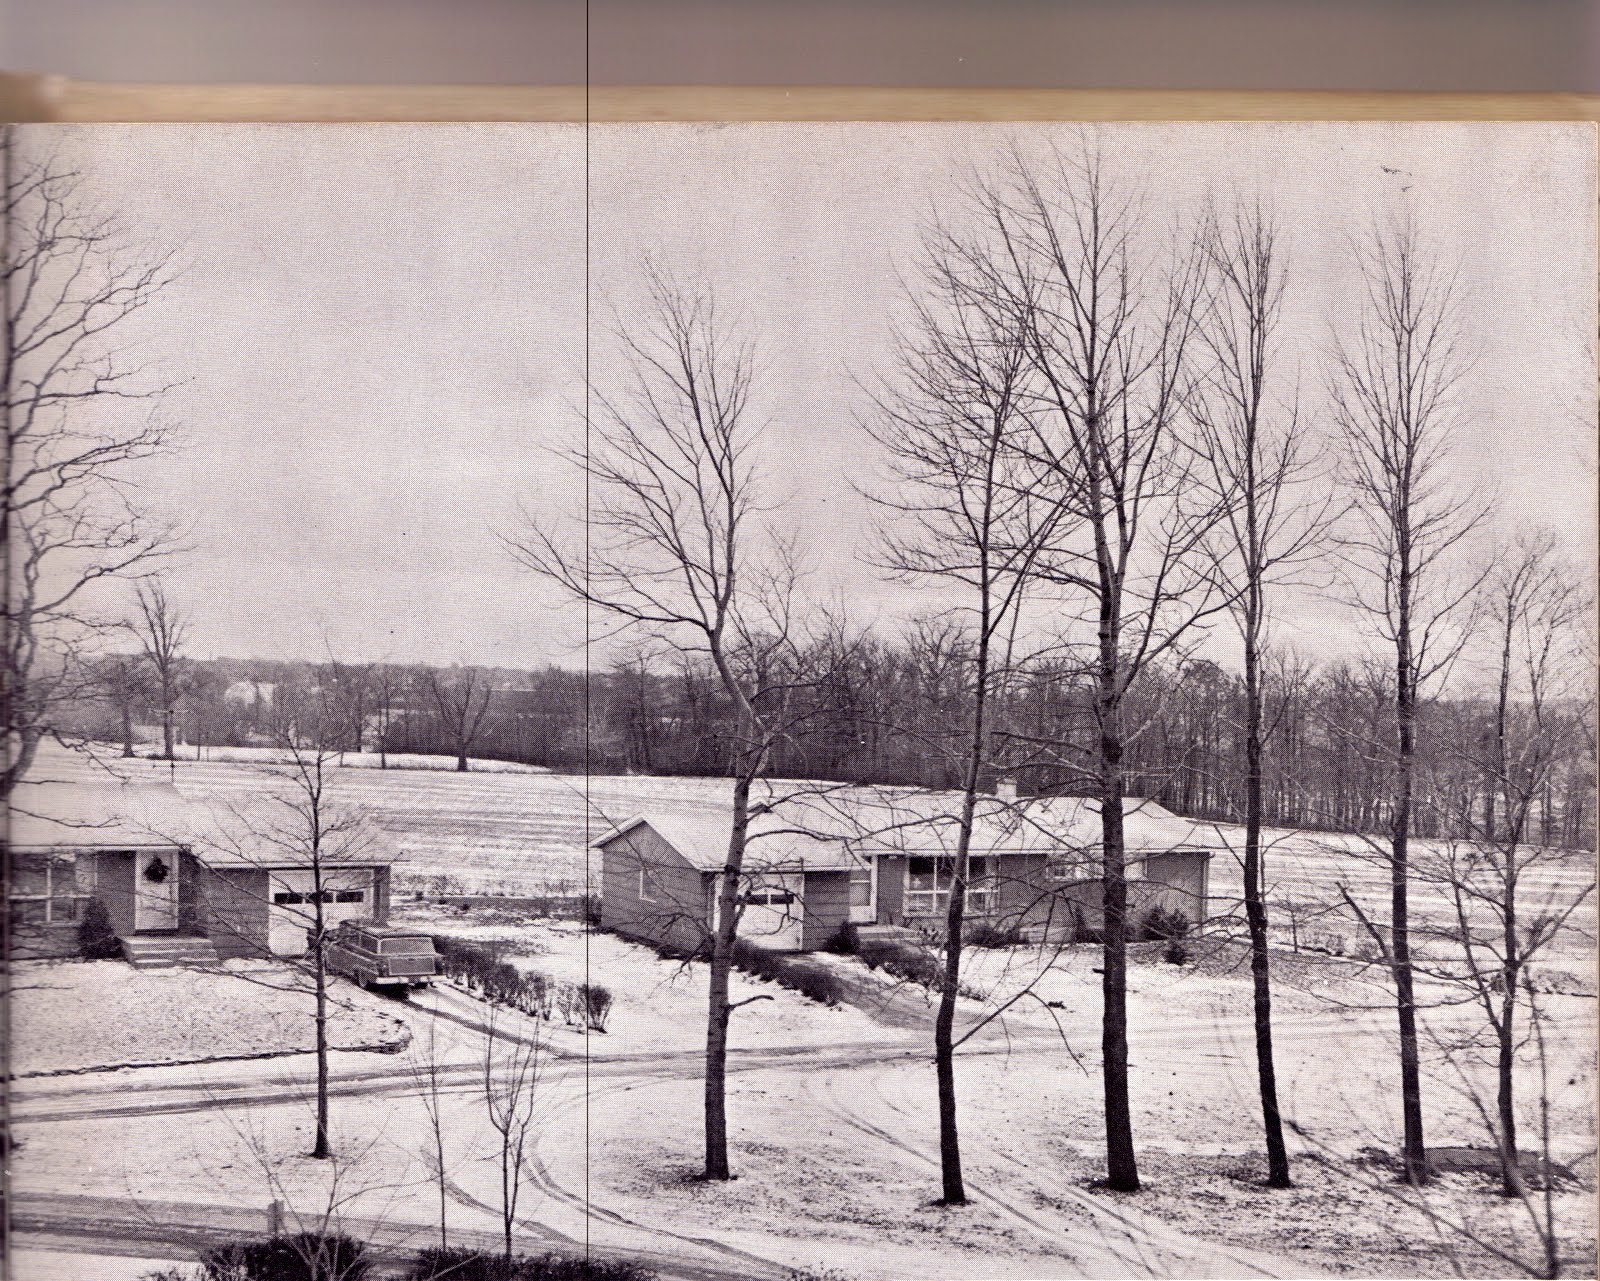 New york niagara county niagara university - The Property Butted Up To The Niagara Escarpment And The Whirlpool Park To The Right Of This Picture Originally The School Controlled